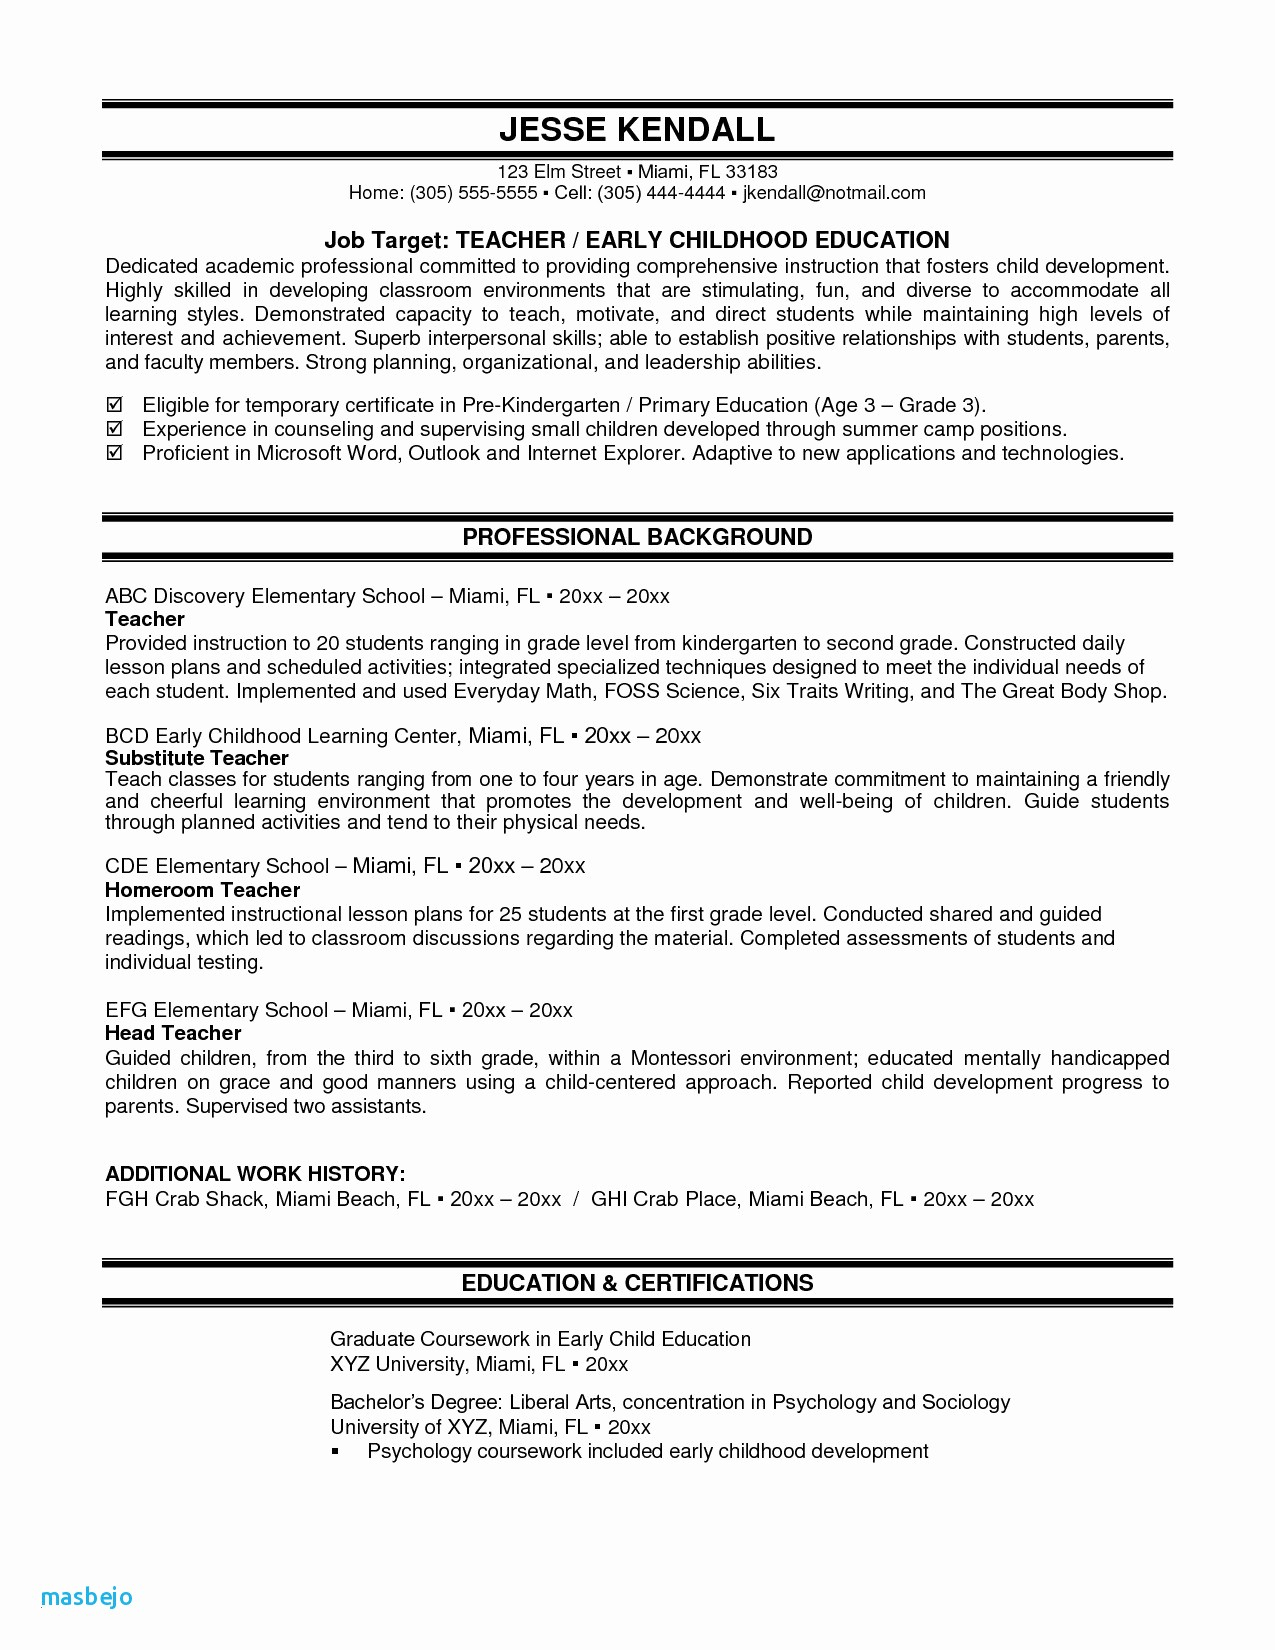 Child Care Provider Resume Sample - 25 New Child Care Resume Examples